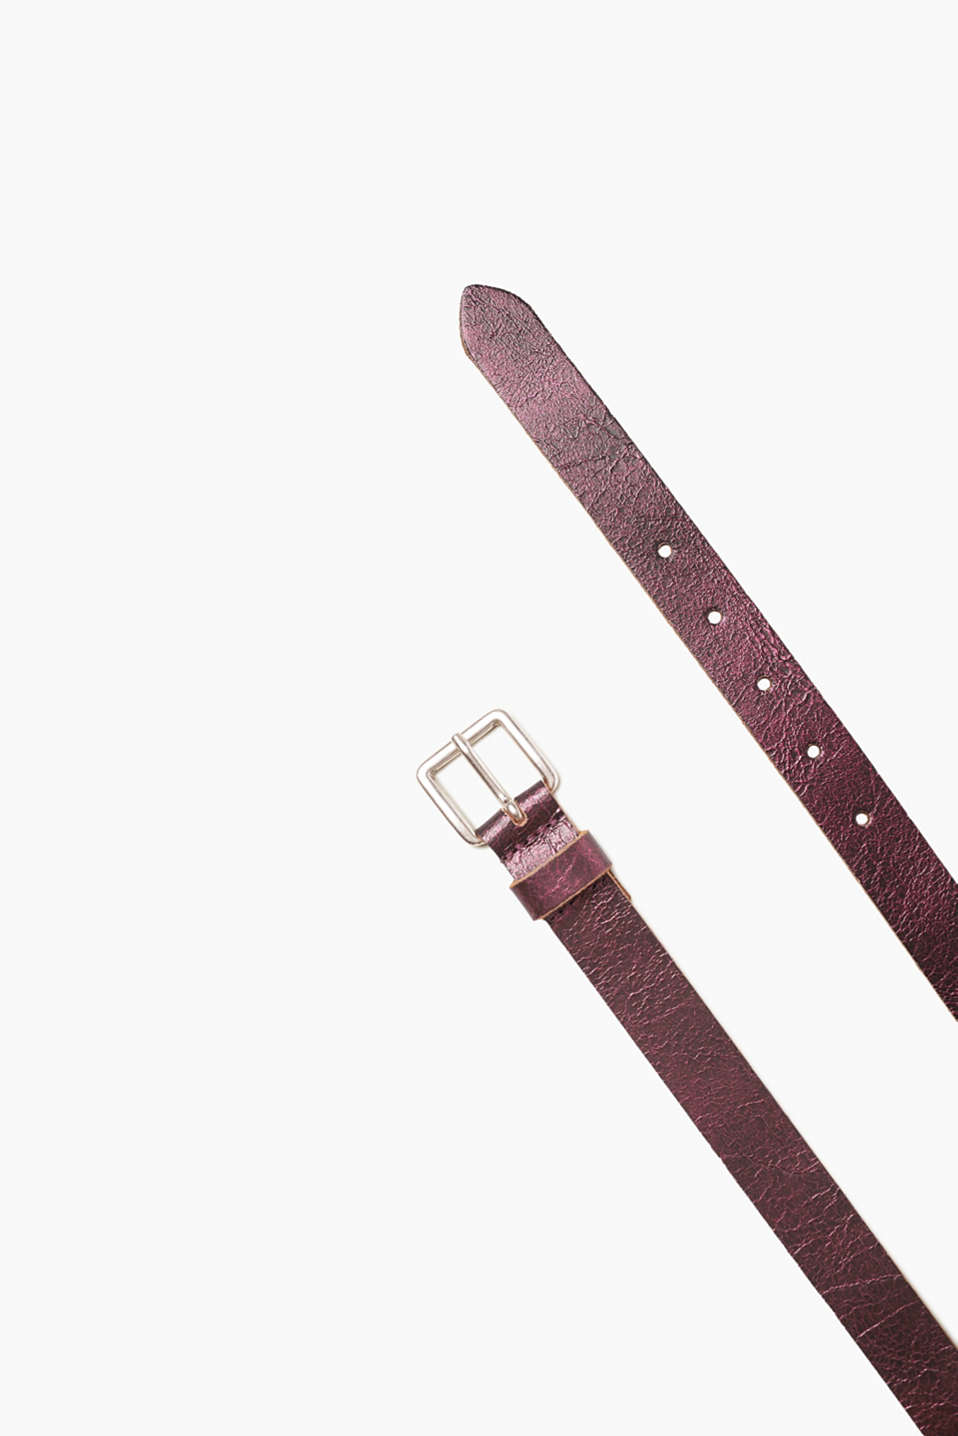 An eye-catching accessory! This belt is bound to impress with its metallic vintage finish.